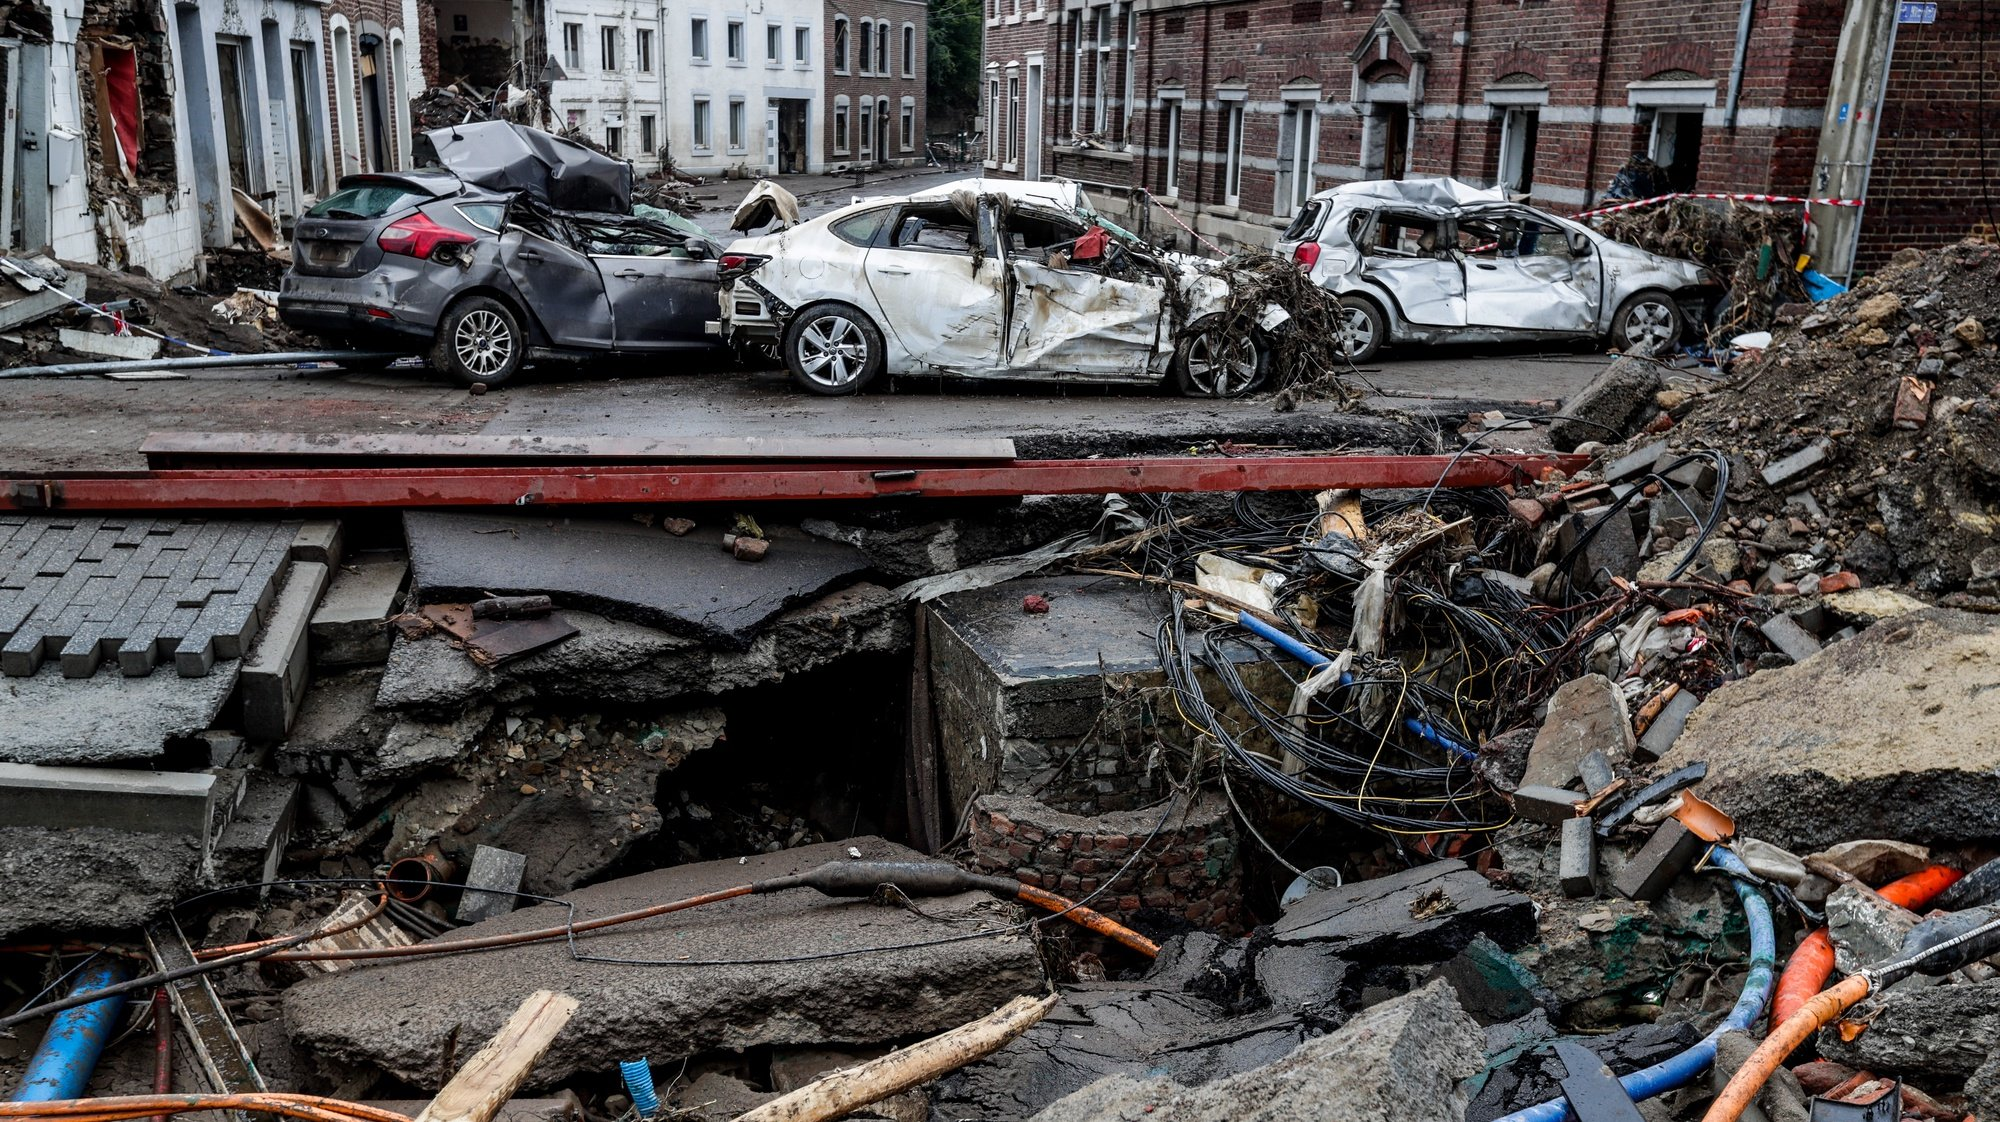 epaselect epa09362387 A view of damaged cars in Pepinster, Belgium, 24 July 2021. Heavy rains caused widespread damage and flooding in parts of Belgium and across central Europe in the night of 14/15 July. Dozens have died and many remain unaccounted for.  EPA/STEPHANIE LECOCQ